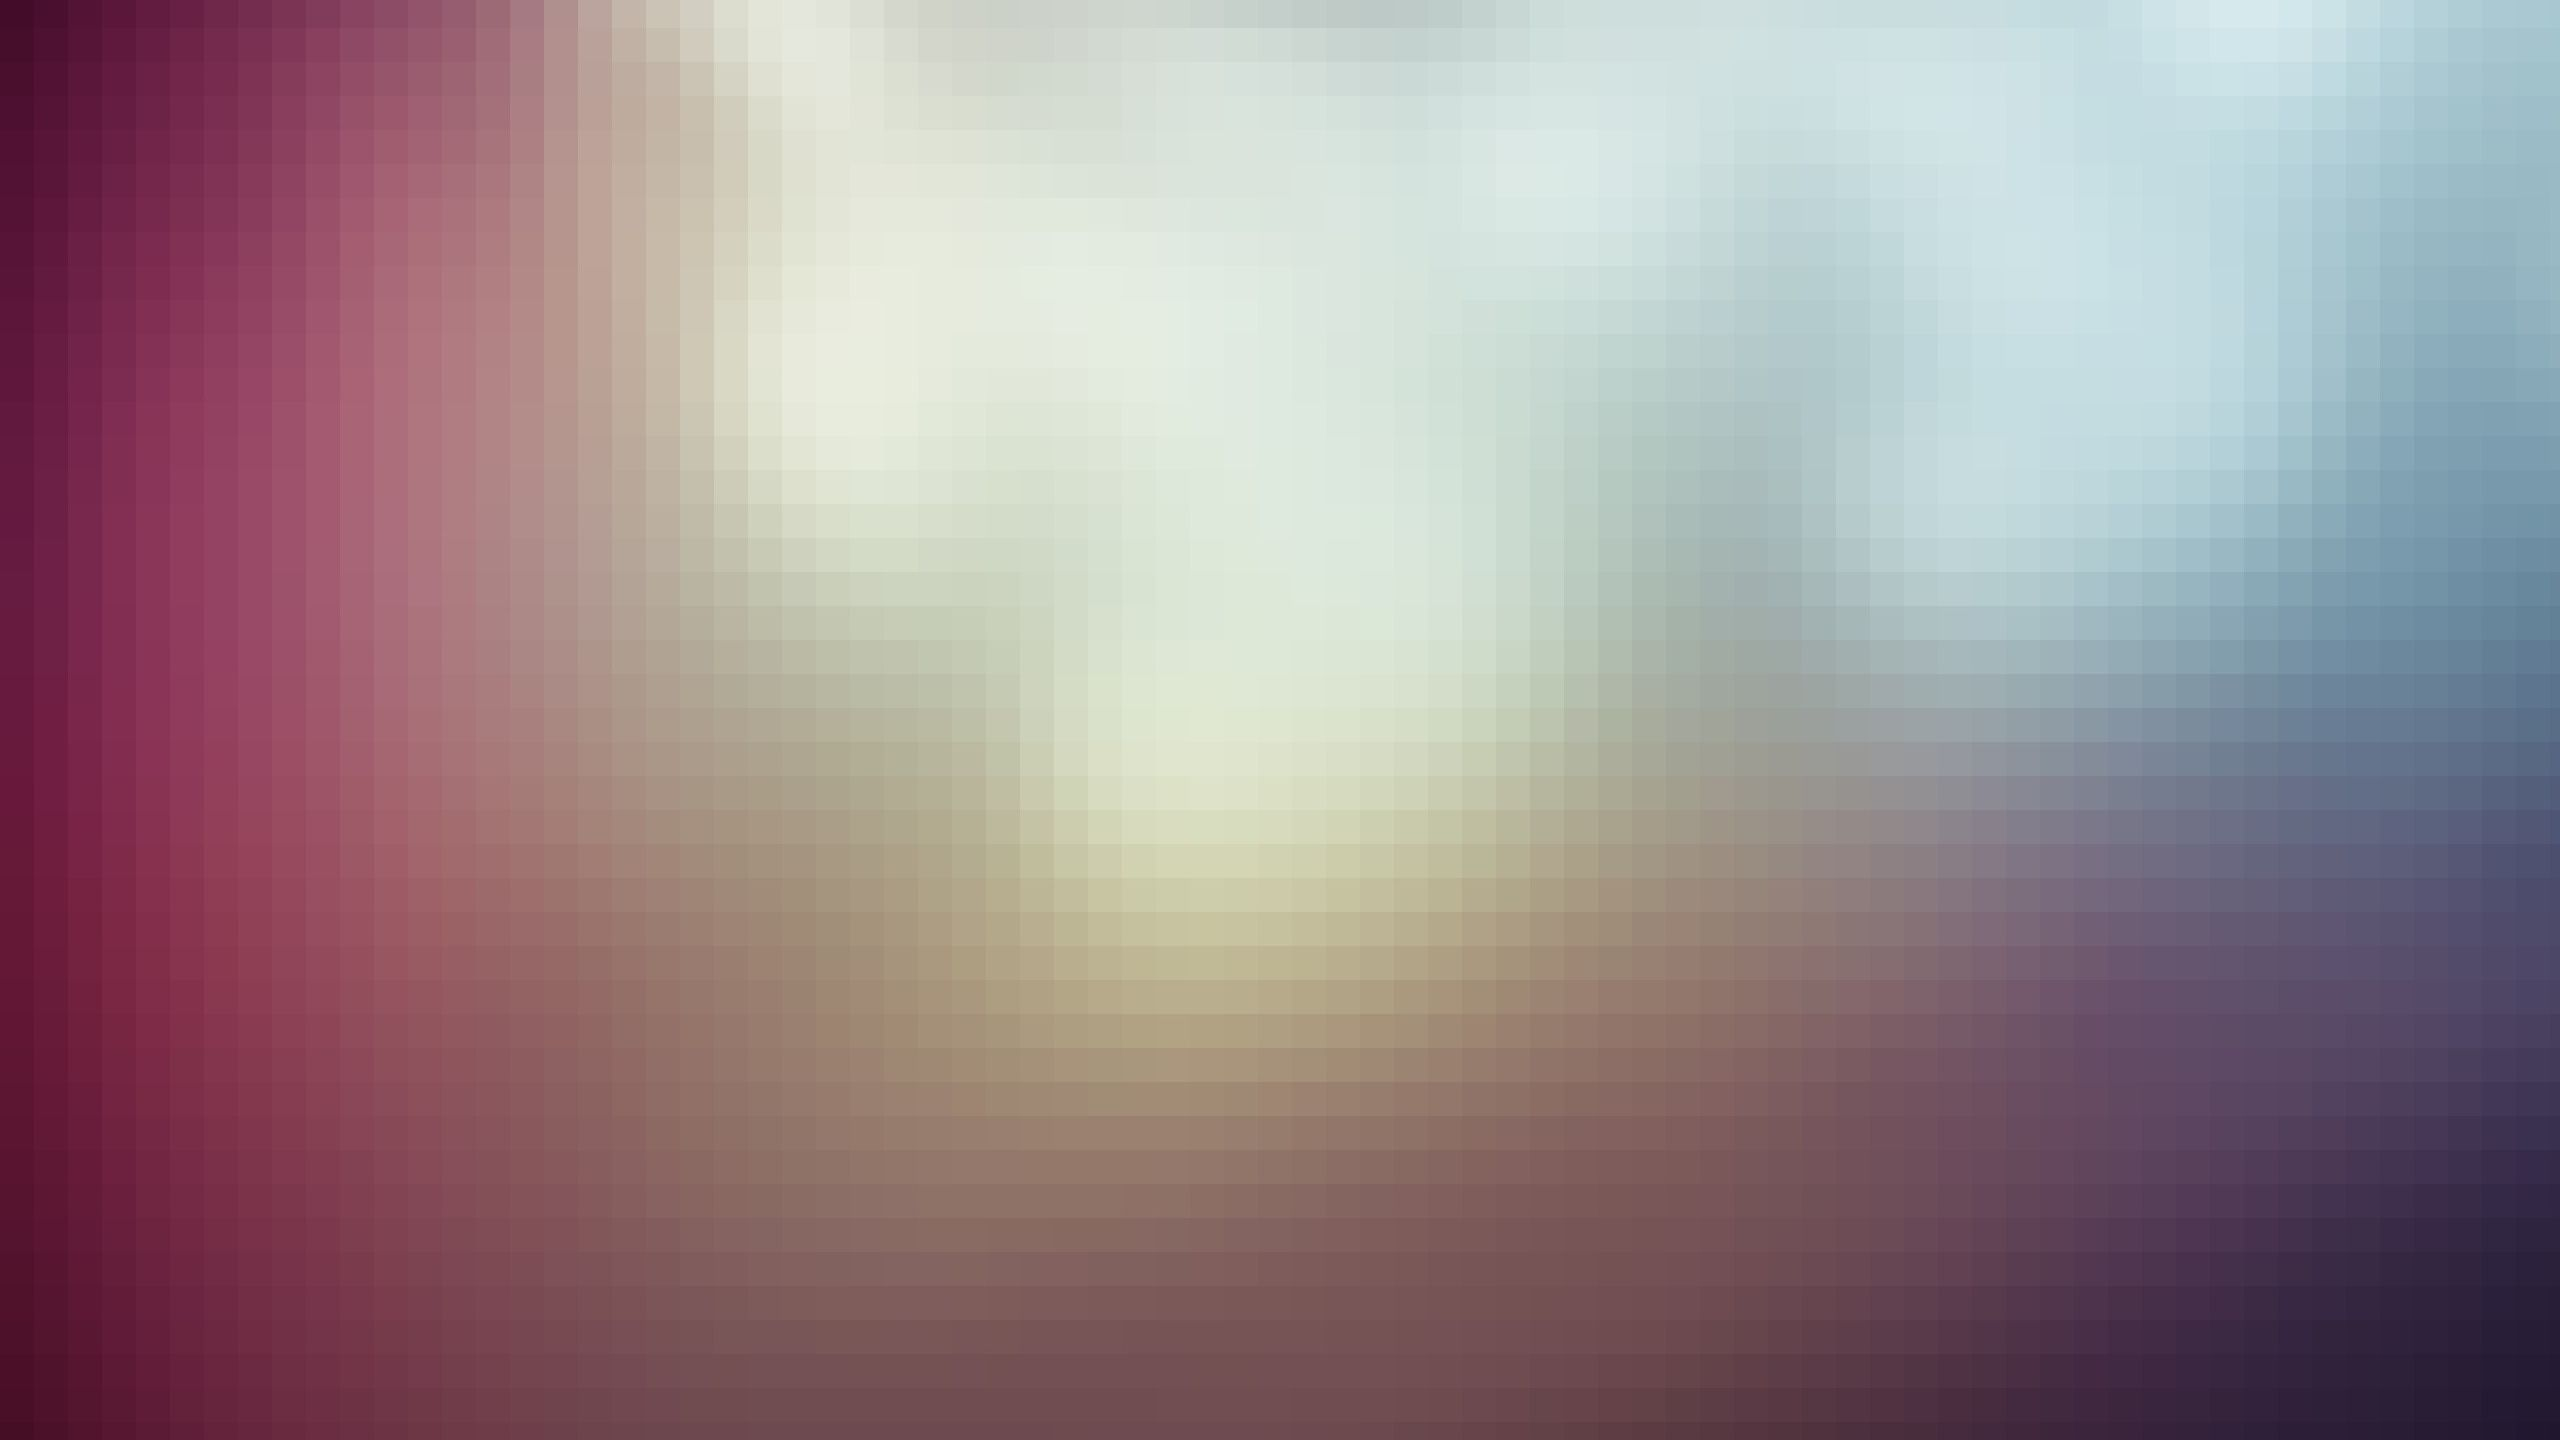 Vintage Burn Texture On Square Patern Wallpaper Blurry Pictures Colorful Backgrounds